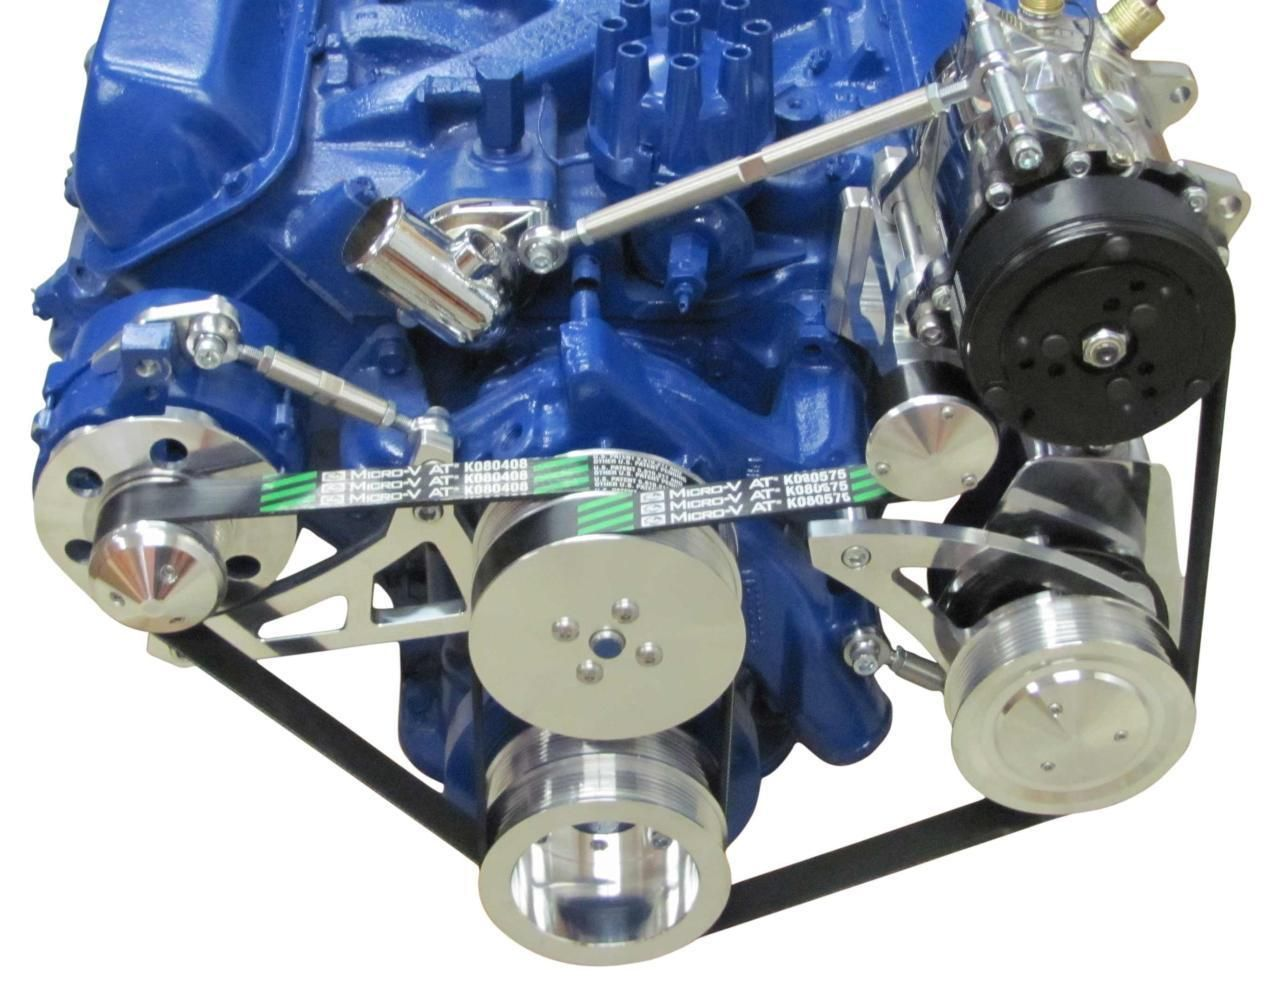 Ford 390 fe edelbrock fuel injection conversion aluminum serpentine conversion kit ford fe engine